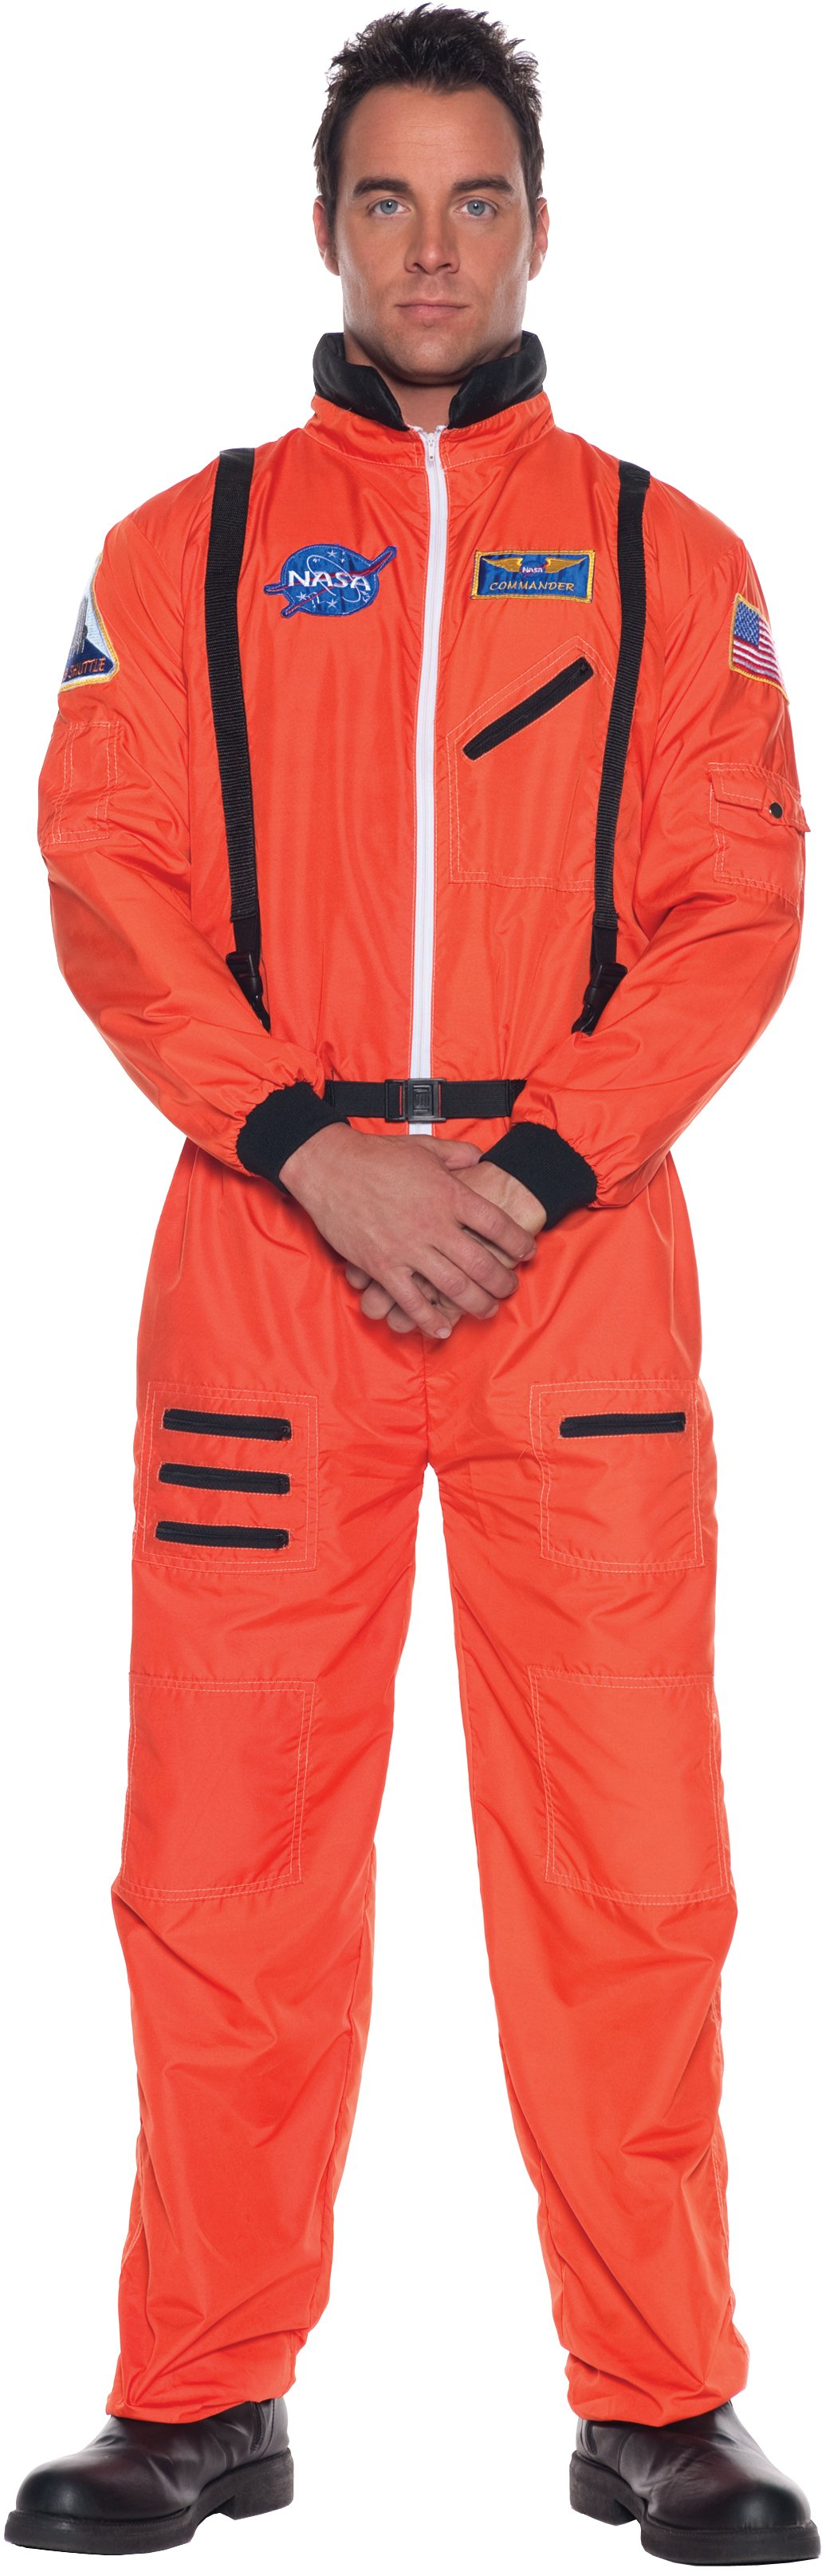 Astronaut (Orange) Plus Adult Costume